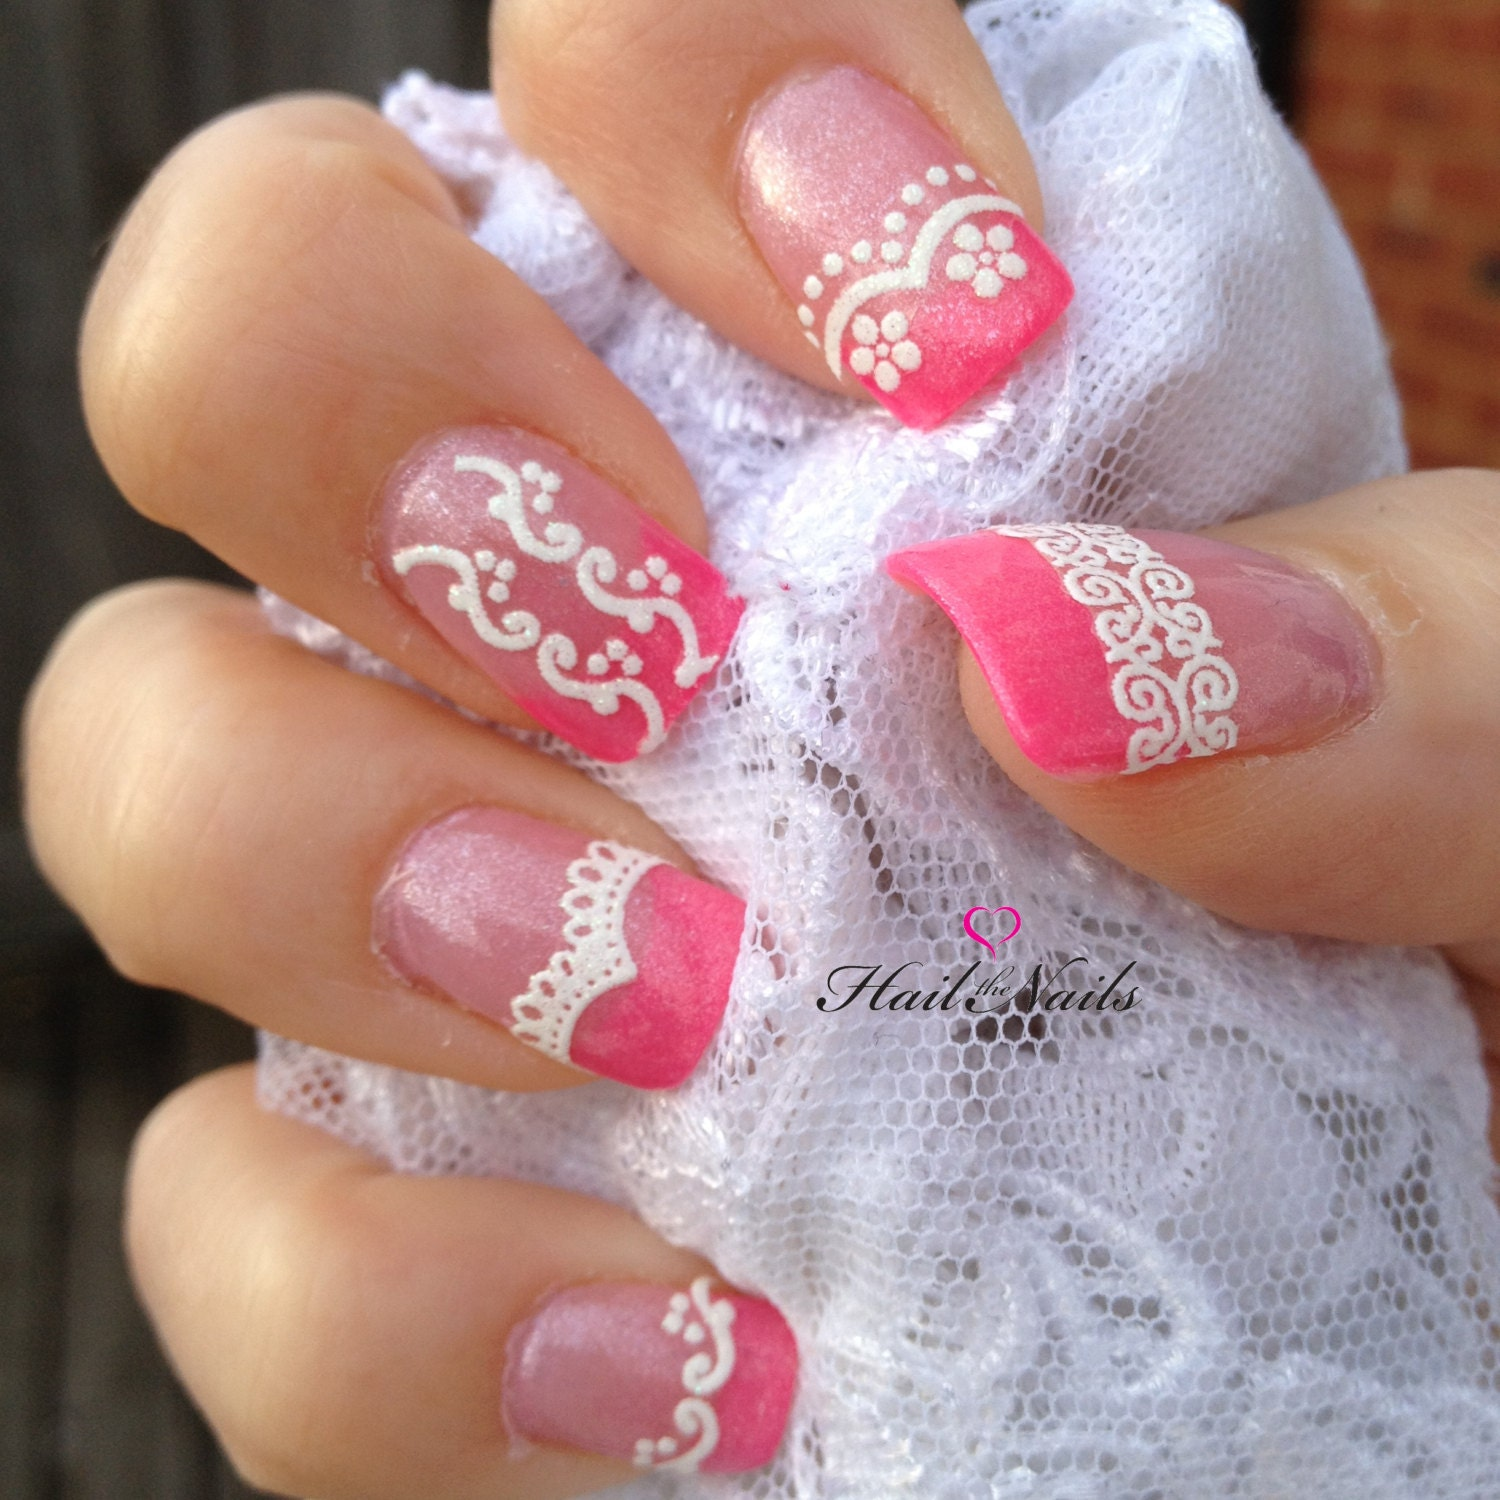 Nail Art Stickers: Lace Glitter White Nail Art Stickers Nail Decals By